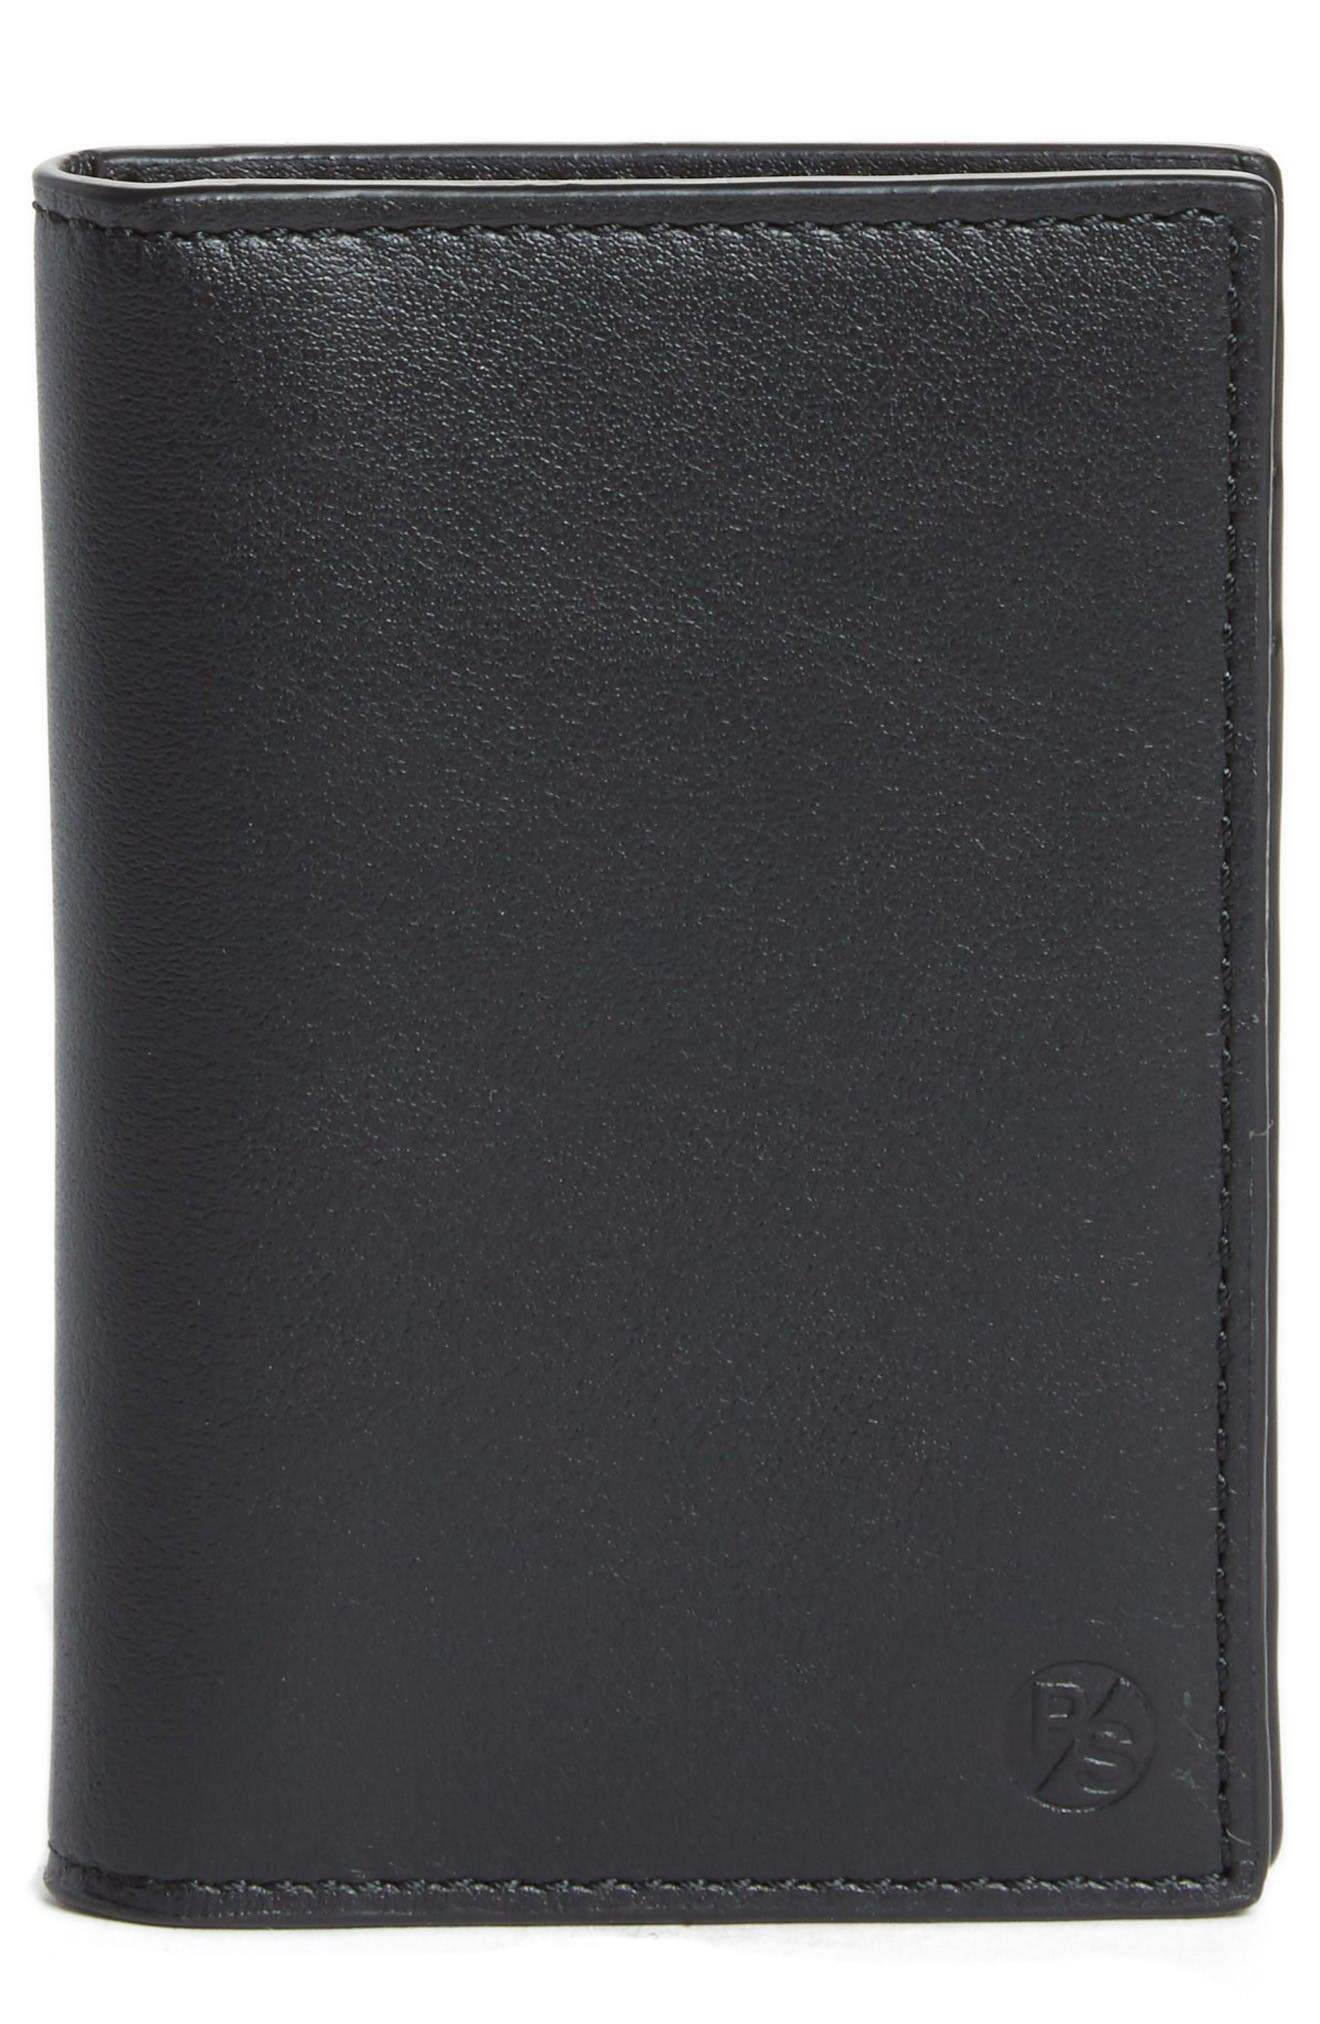 Paul Smith Color Accent Leather Wallet